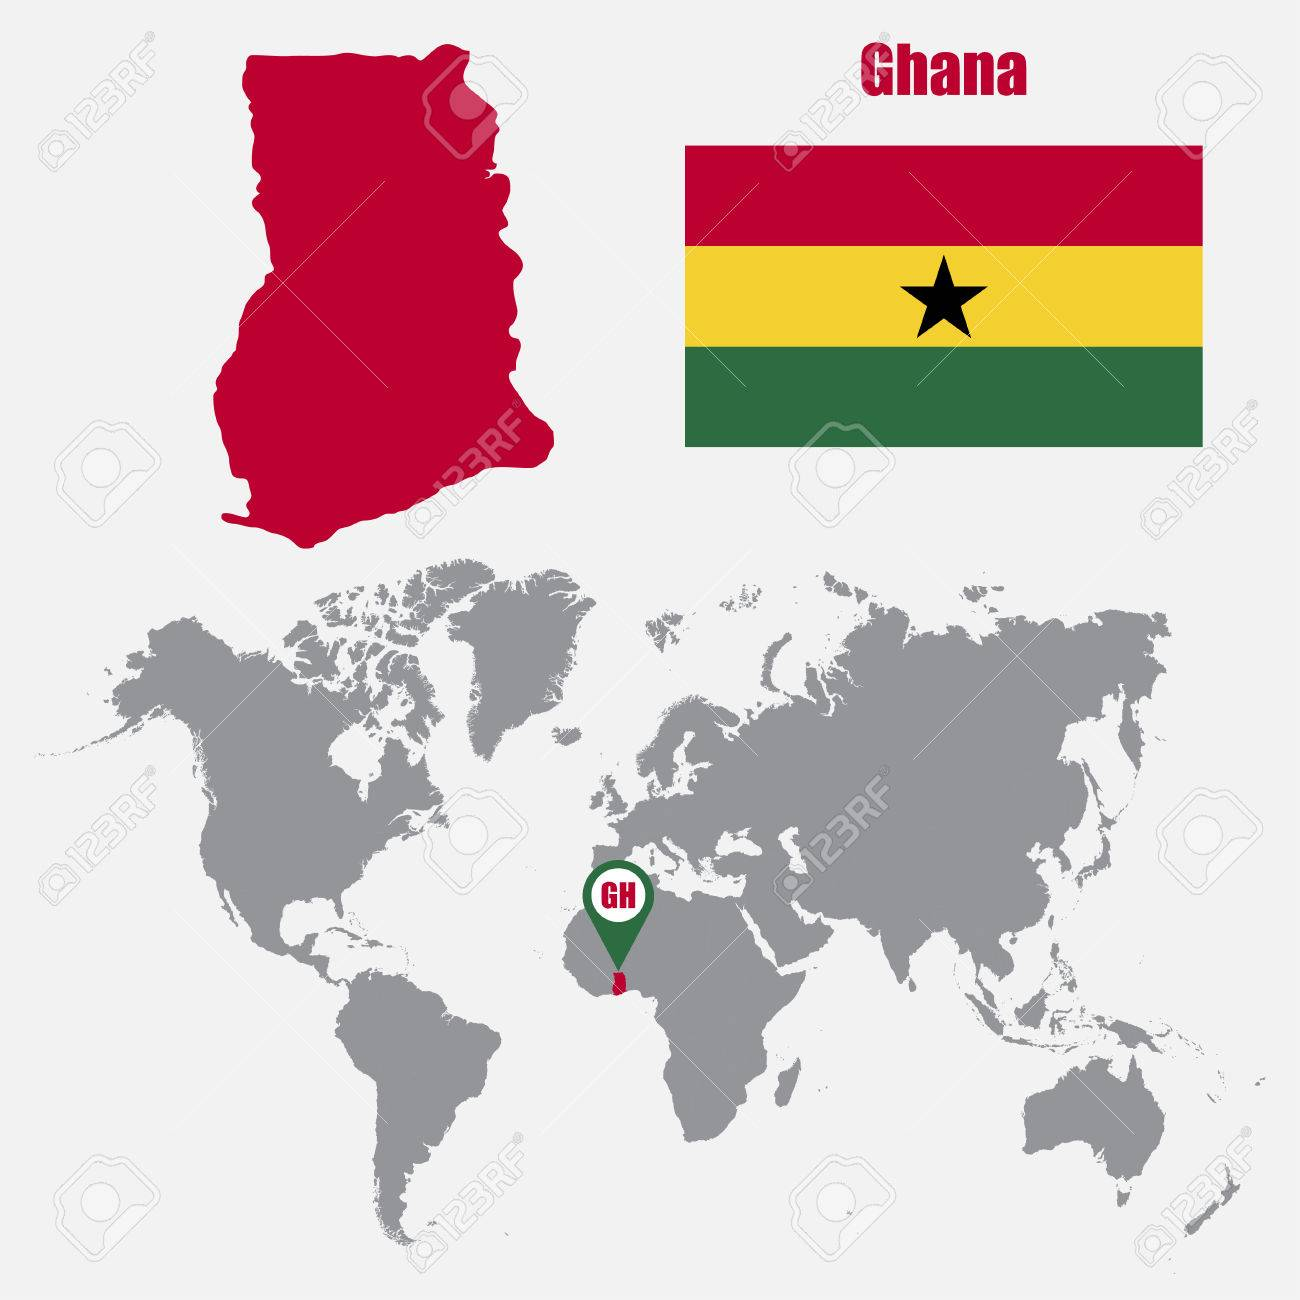 Ghana On A World Map.Ghana Map On A World Map With Flag And Map Pointer Vector